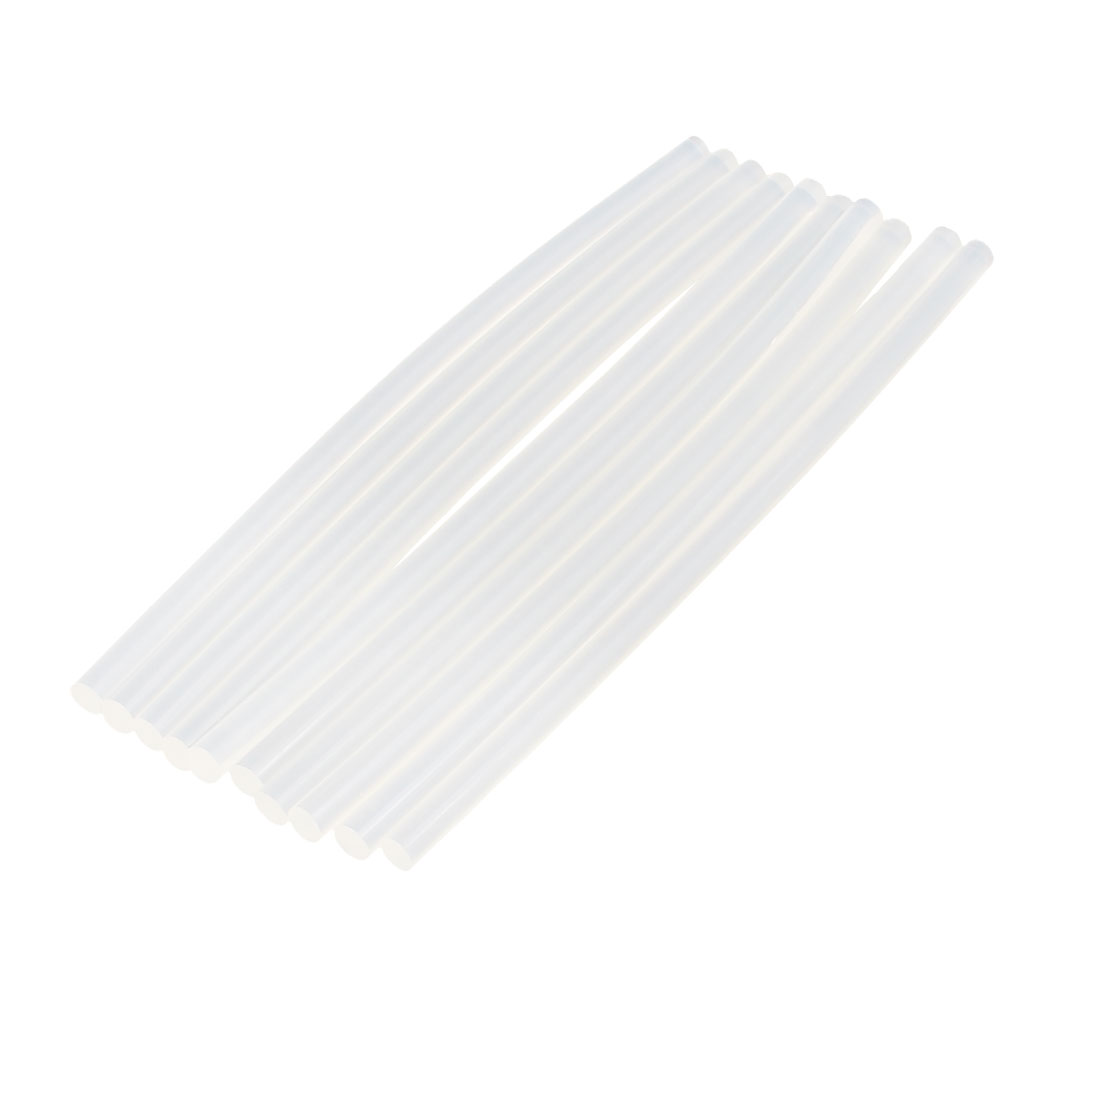 10 Pcs 7mm x 190mm Hot Melt Glue Adhesive Stick Clear for Electric Tool Heating Gun